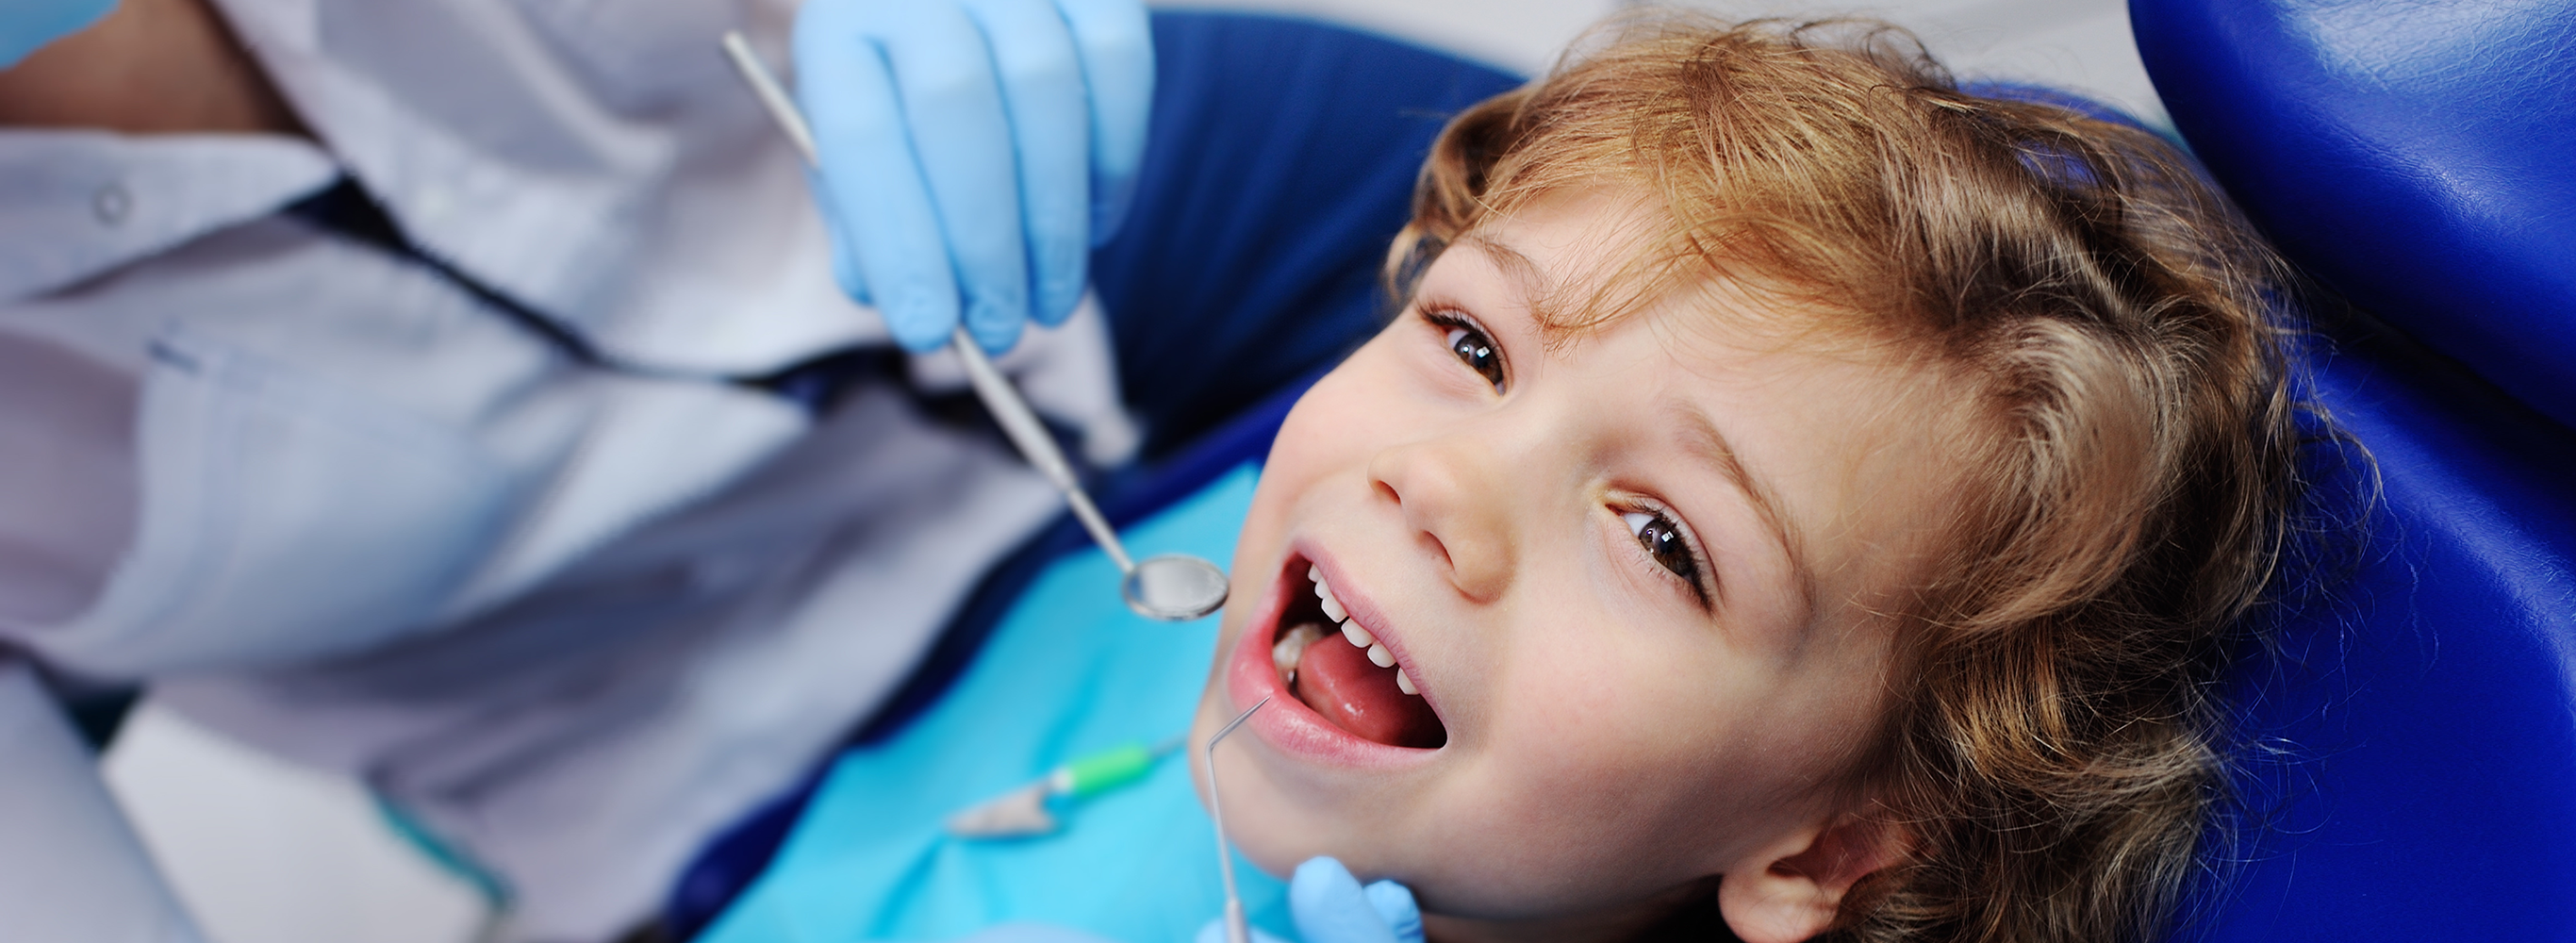 Beavercreek Pediatric Dentistry Beavercreek Ohio Your First